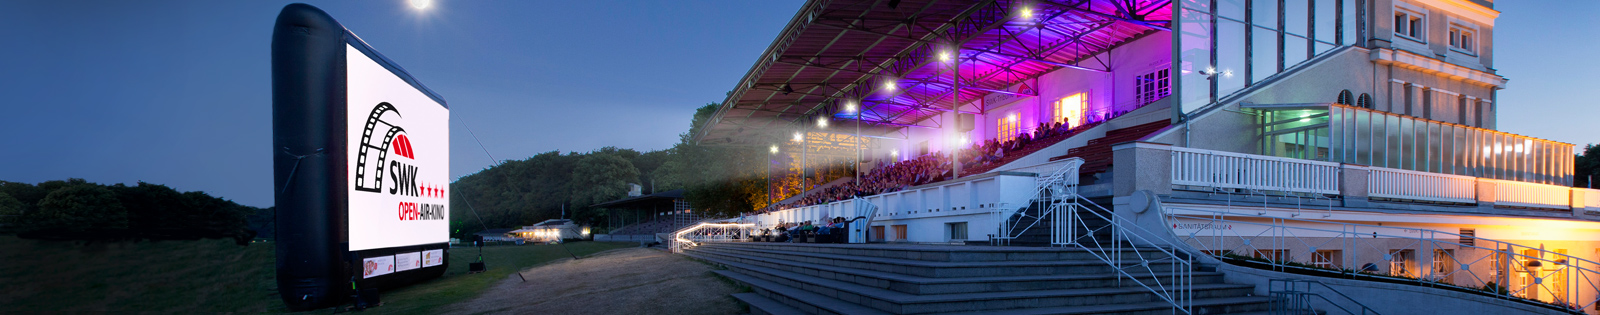 Design#5001324: Open-air-kino. Open Air Kino Garten Selber Machen